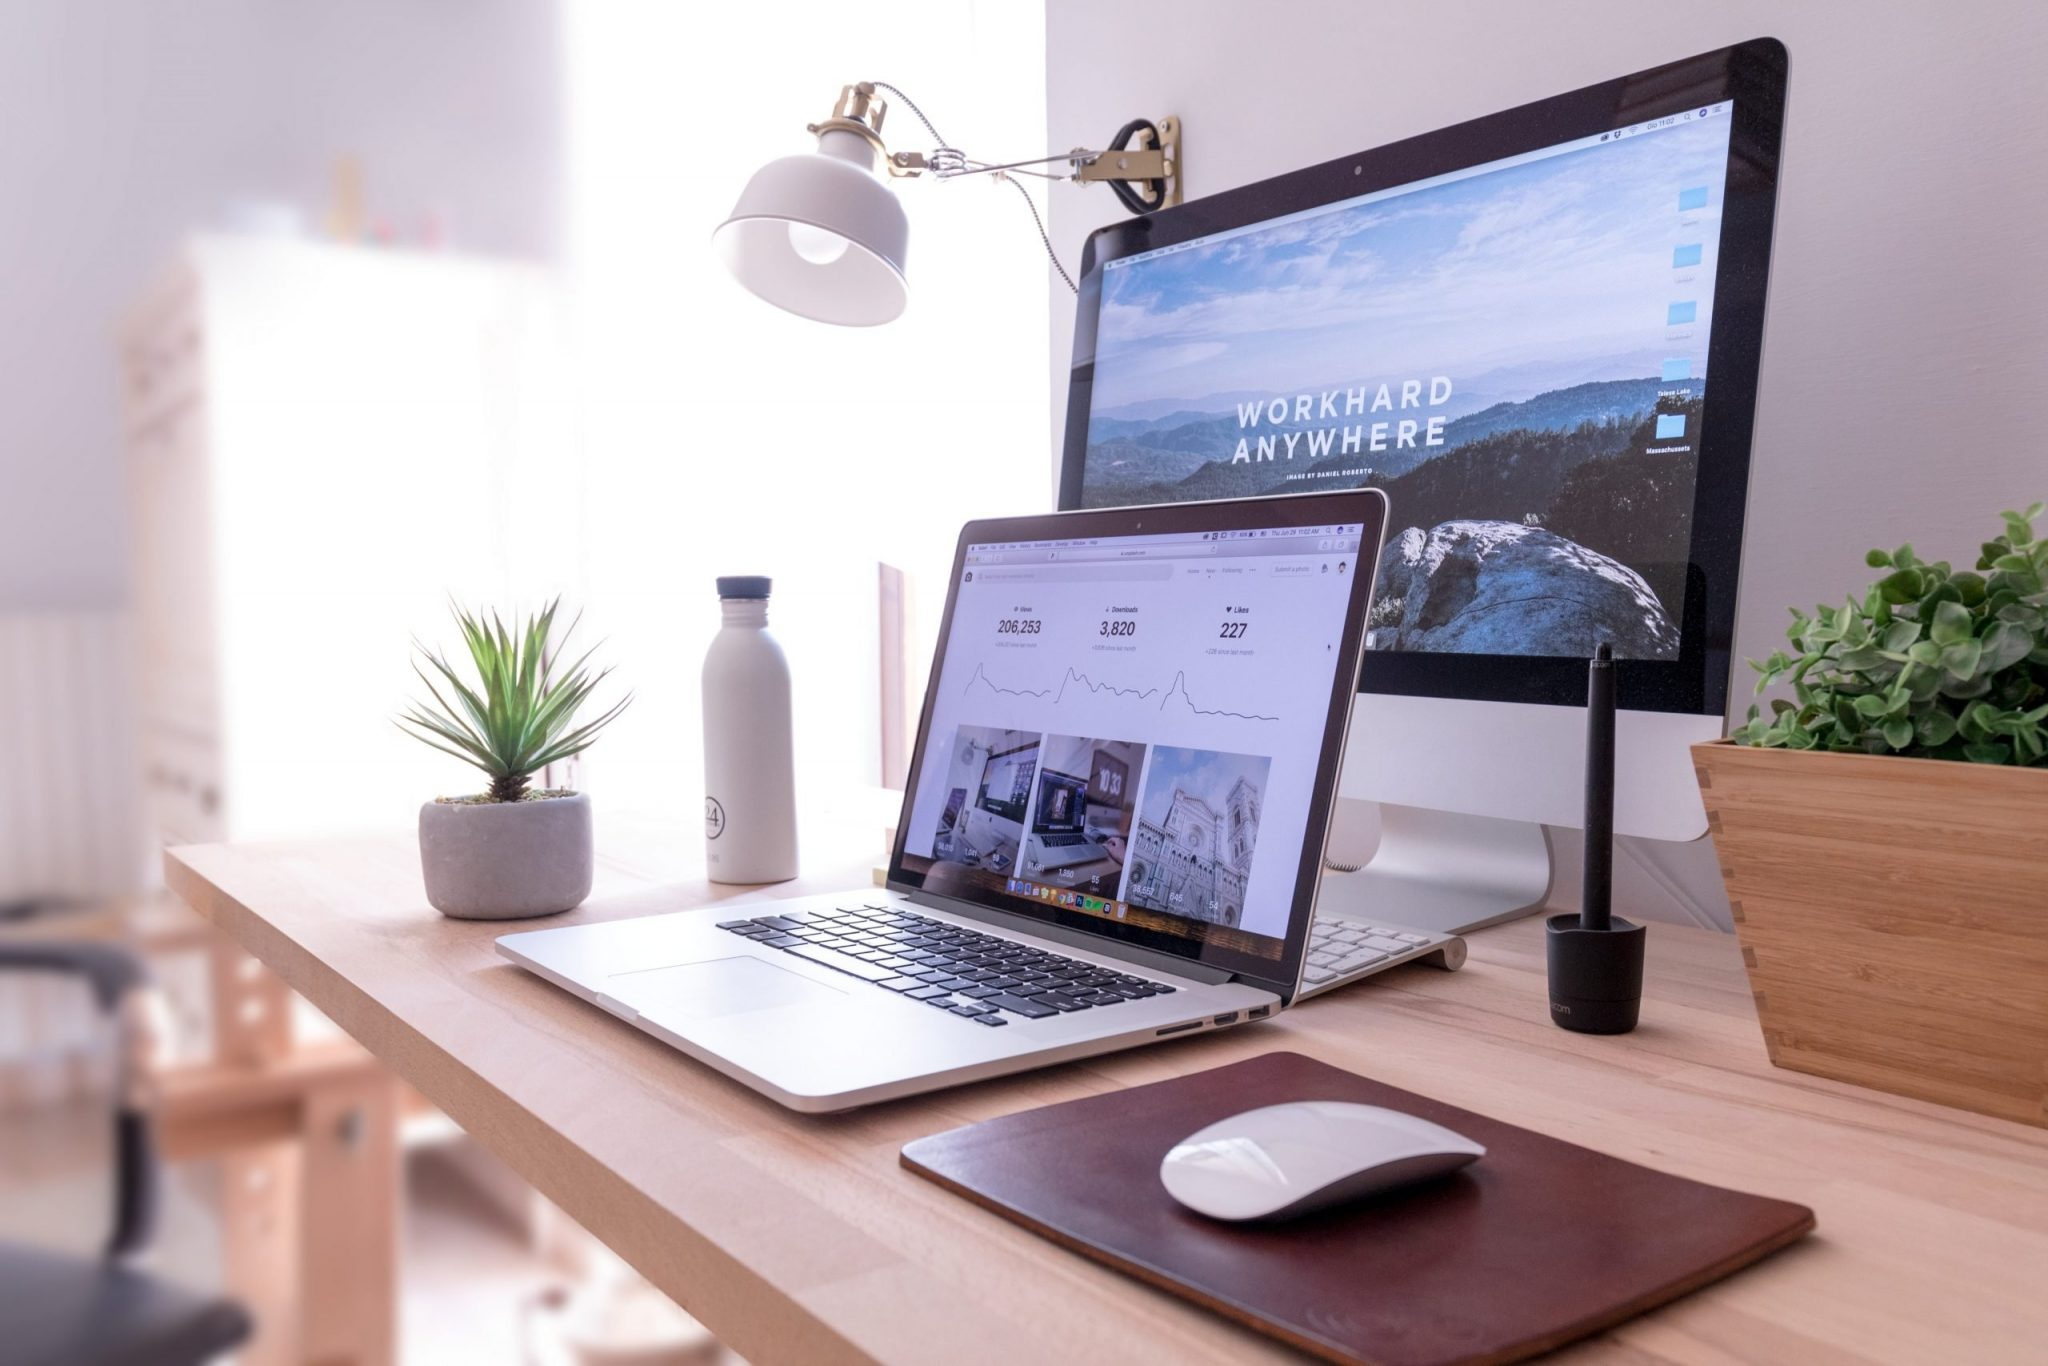 Image of a laptop and monitor